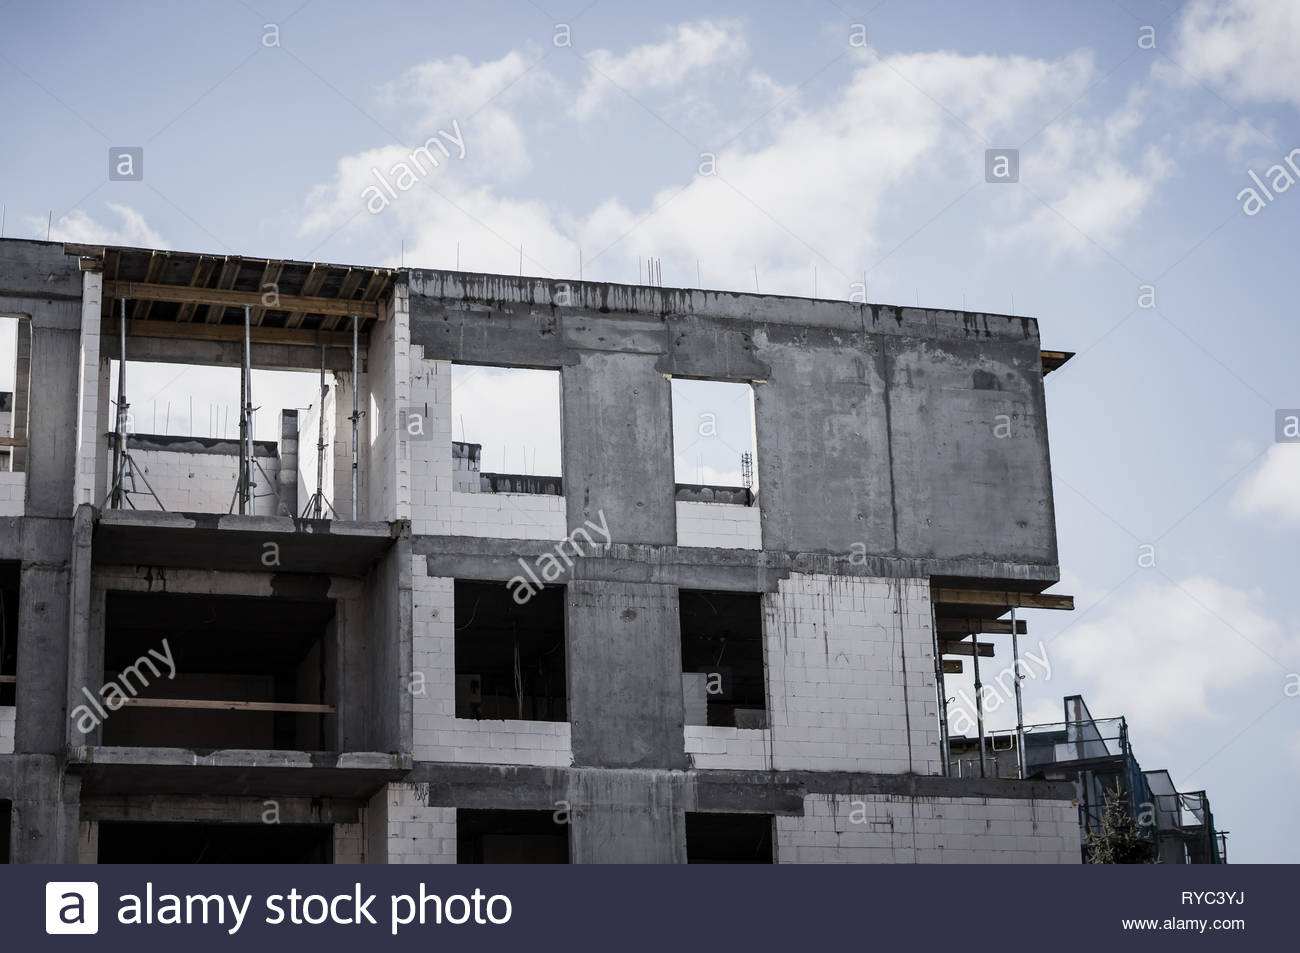 Poznan, Poland - March 9, 2019: New apartment building under construction on the Stare Zegrze district. Stock Photo